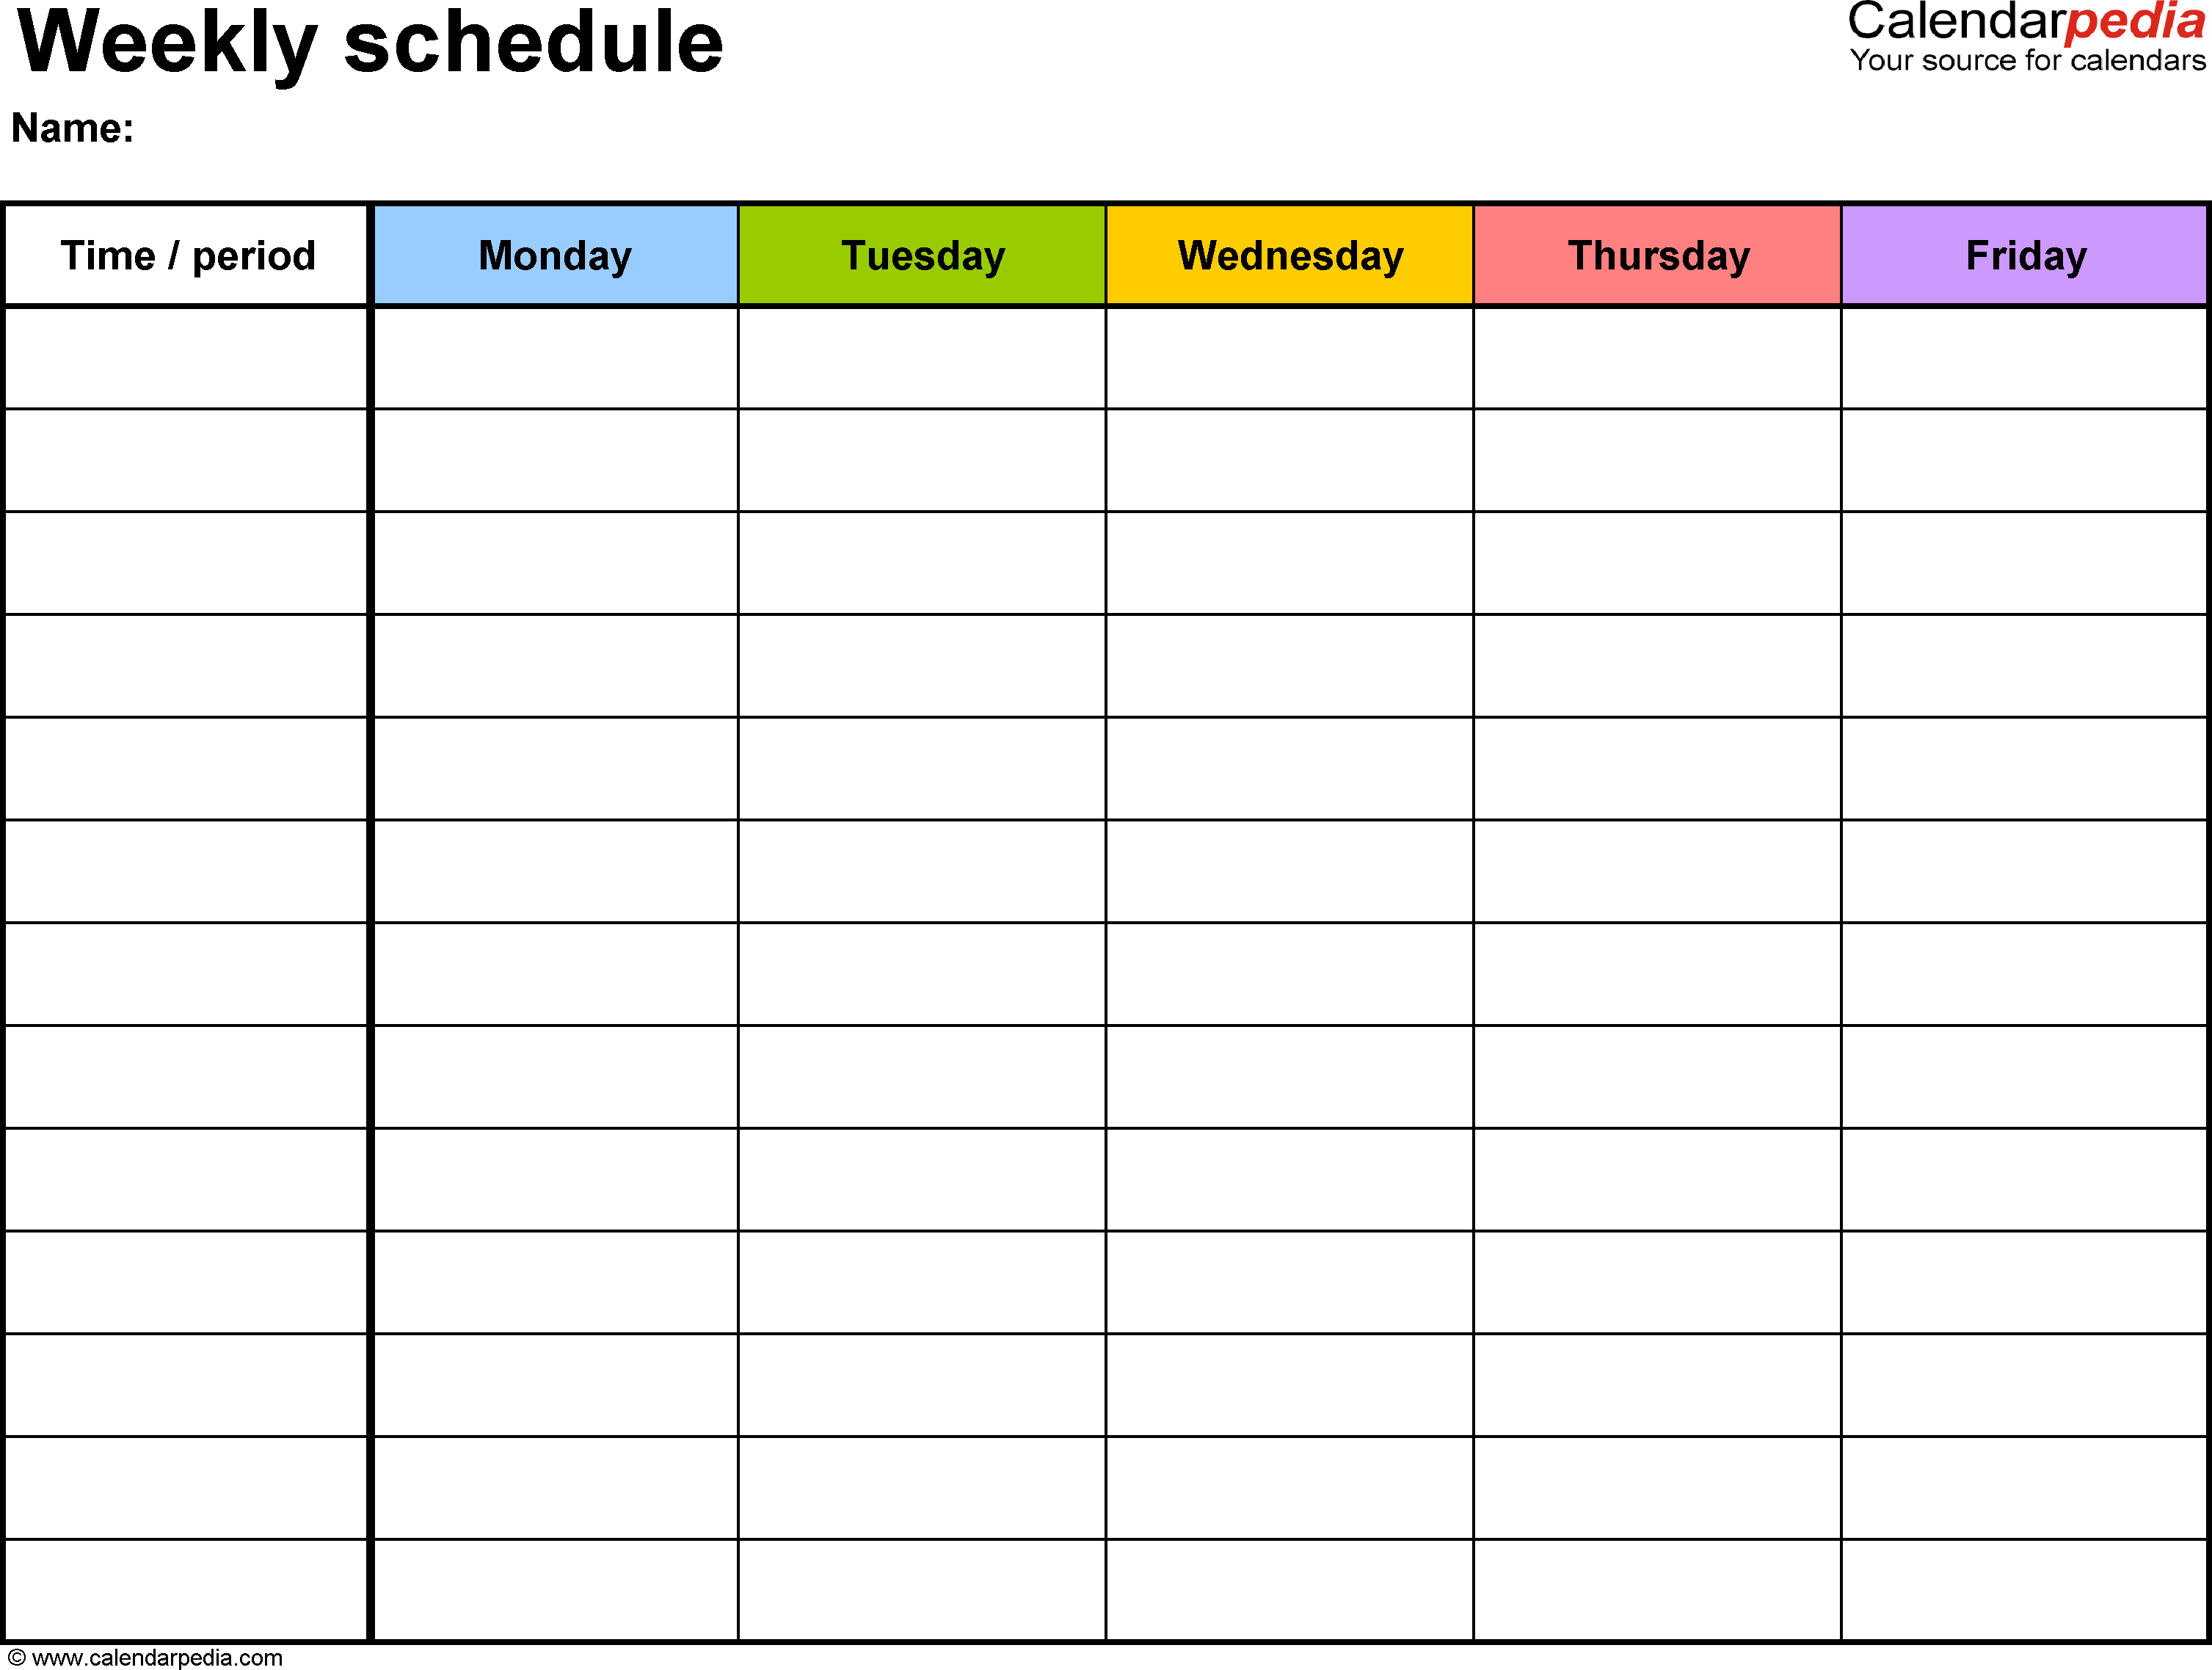 Free Weekly Schedule Templates For Word - 18 Templates in Monday - Sunday Calendar Template